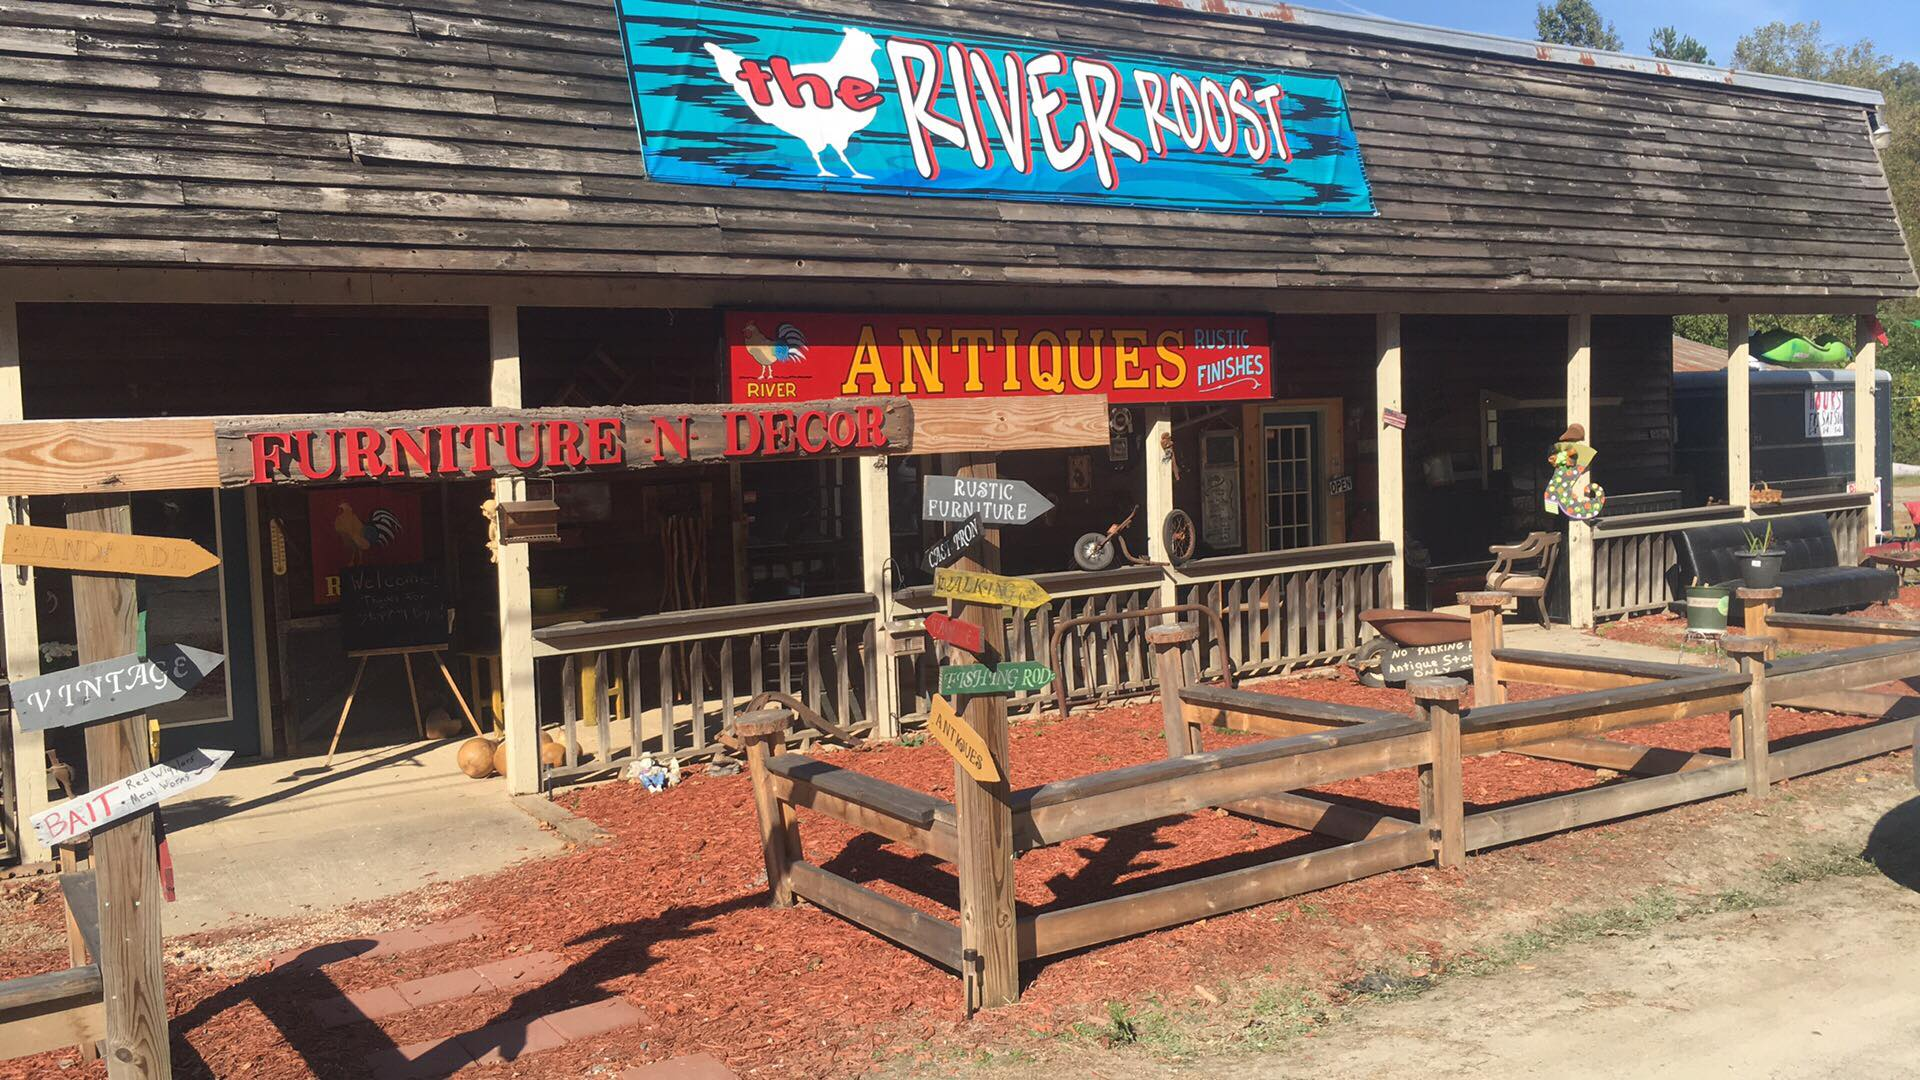 The-River-Roost Top Places to Find a Hidden Antique Treasure in Ellijay - Gilmer County Chamber of Commerce